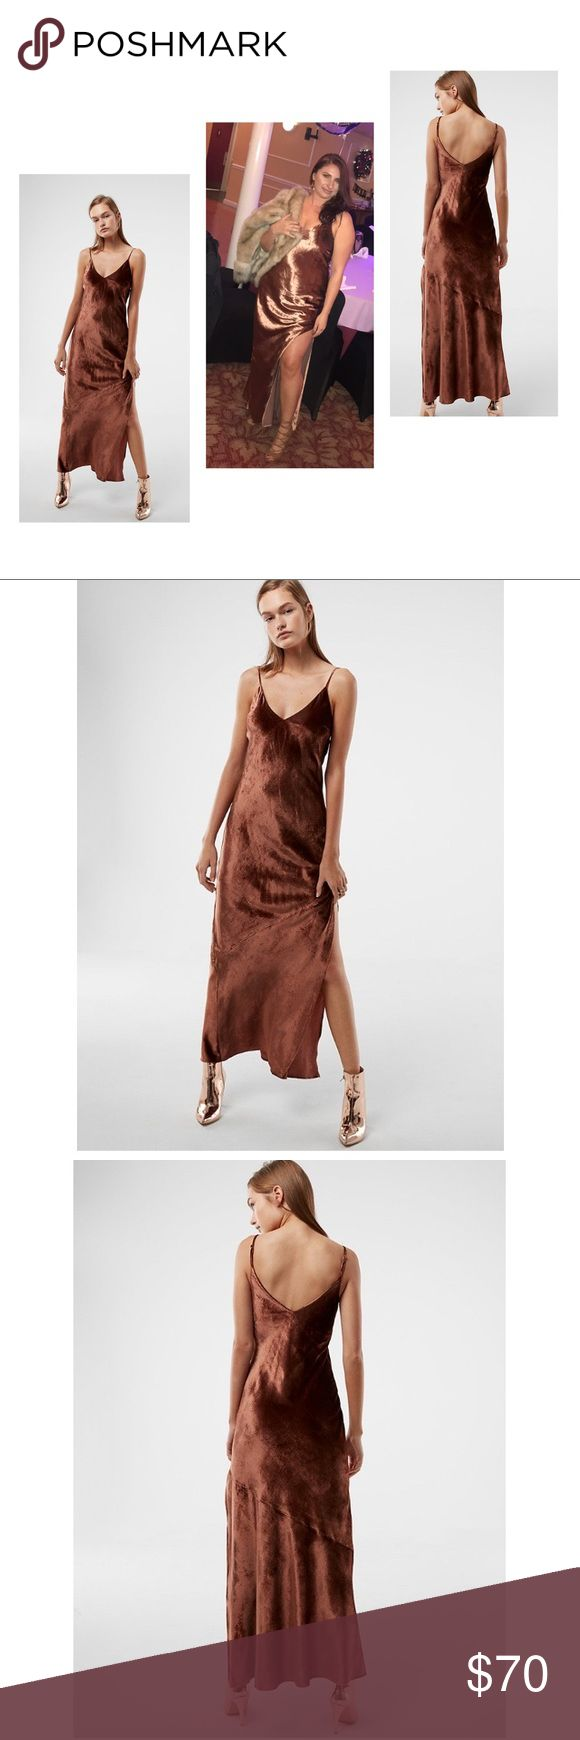 Velvet Brown Maxi Dress Long Maxi Dress With Side Slit. Worn Once. Express Dresses Maxi